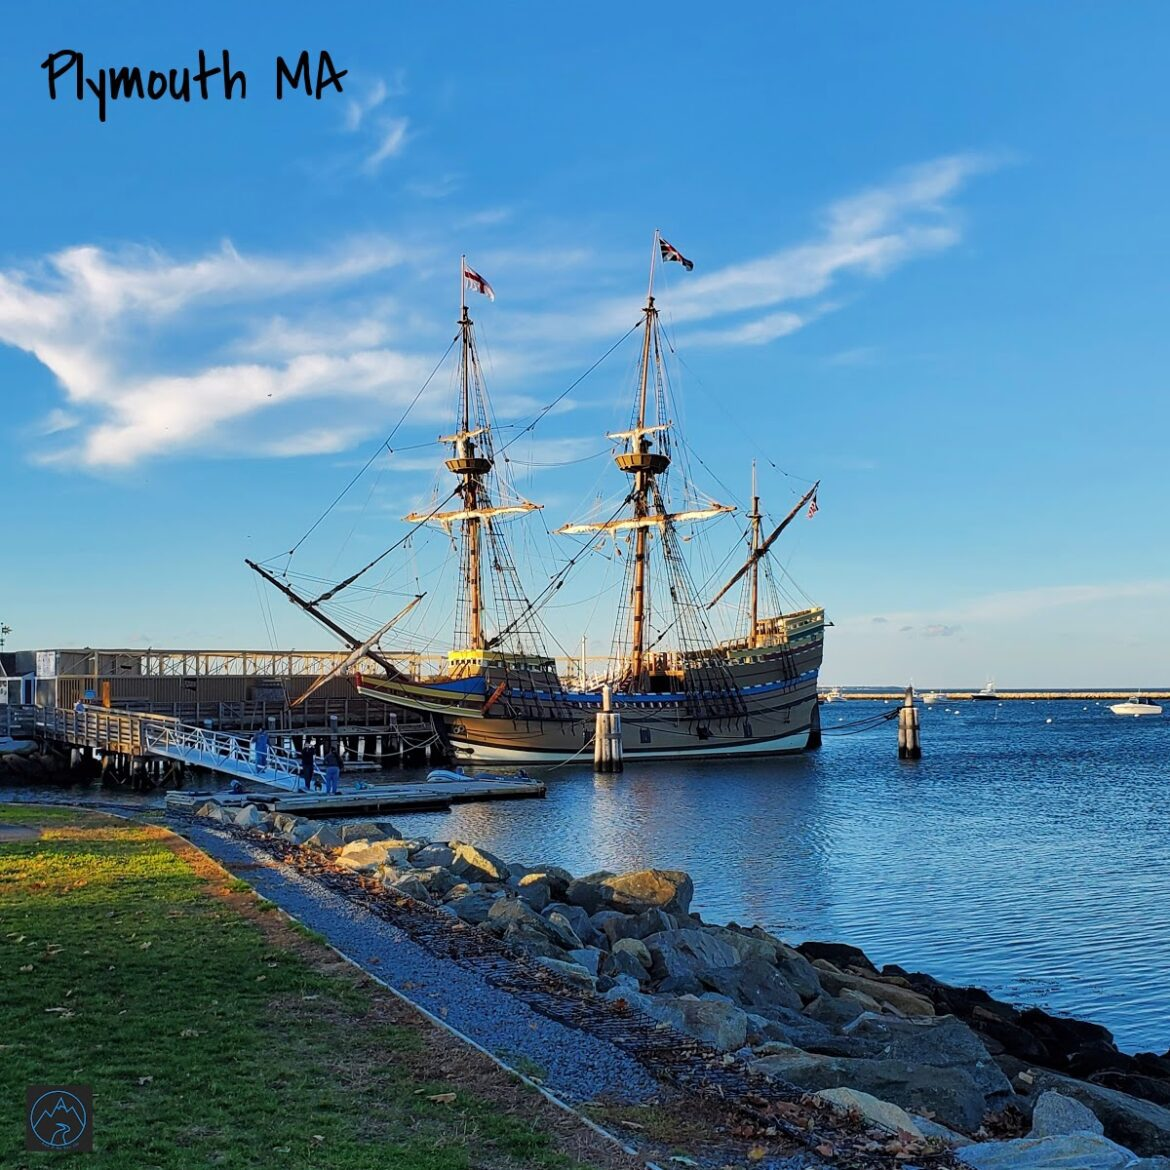 Around Town Photo Gallery – Plymouth MA